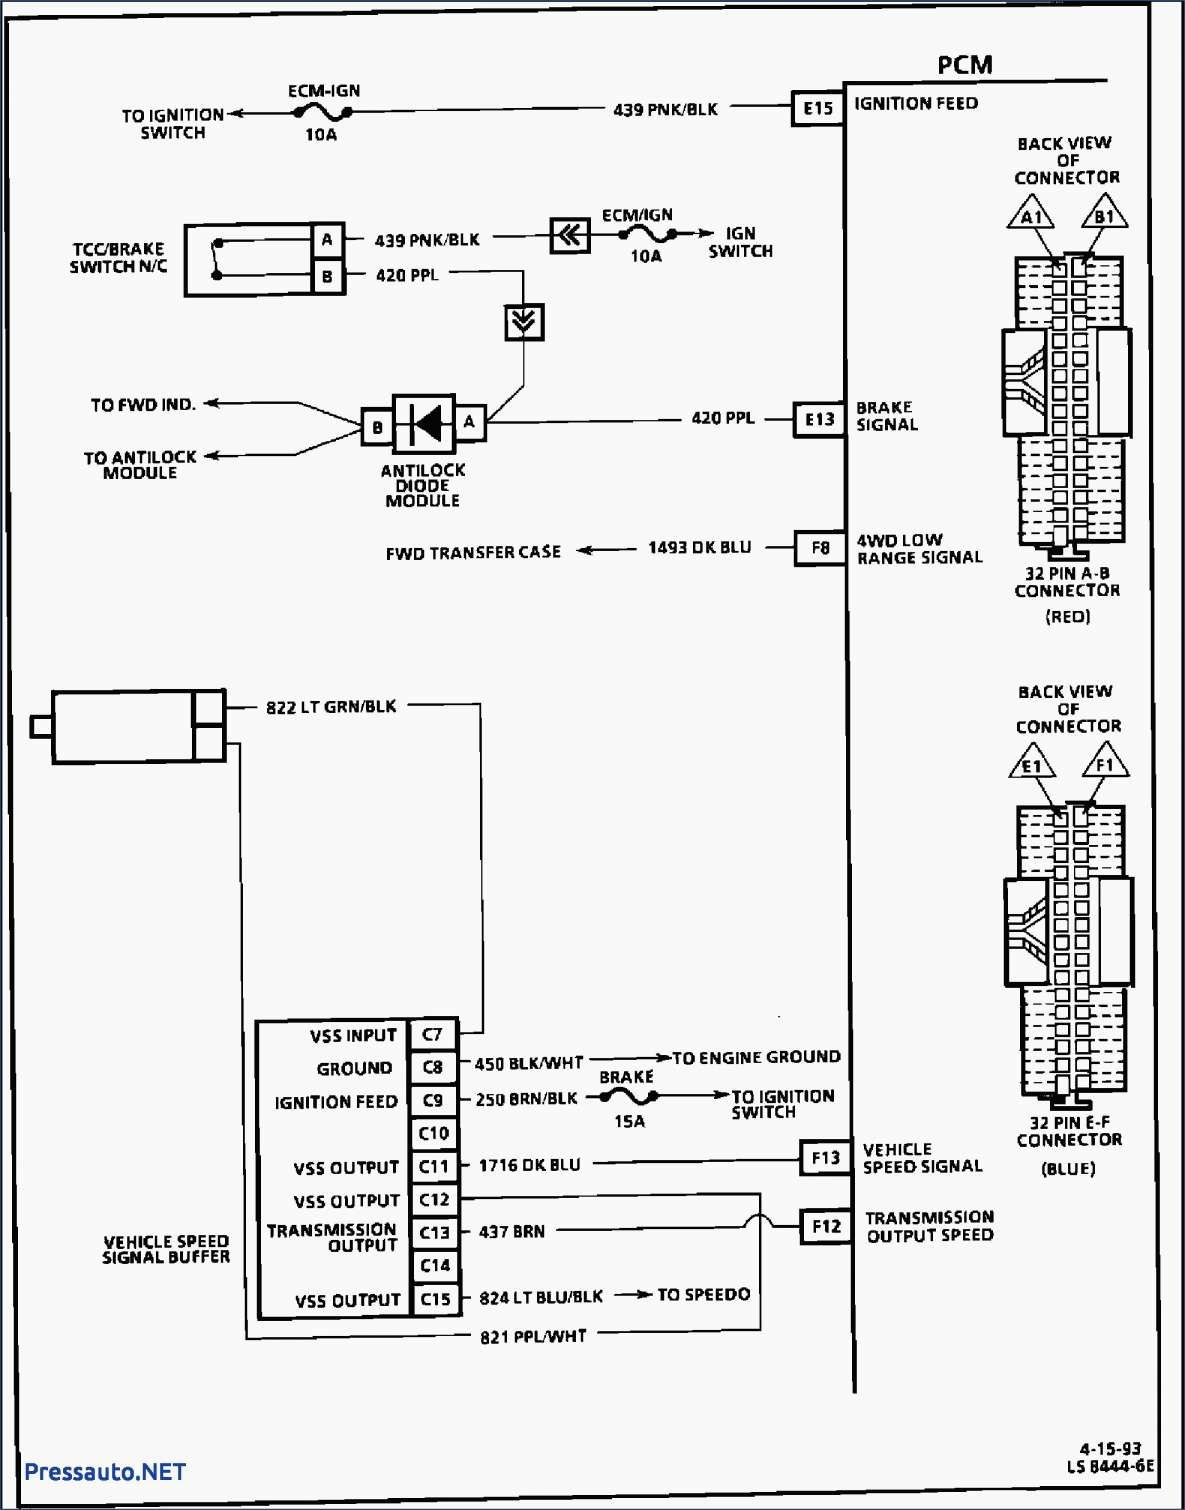 1990 Chevy Truck Fuse Box Diagram And Chevy Truck Fuse Box Wiring Library Chevy Trucks Fuse Box Diagram